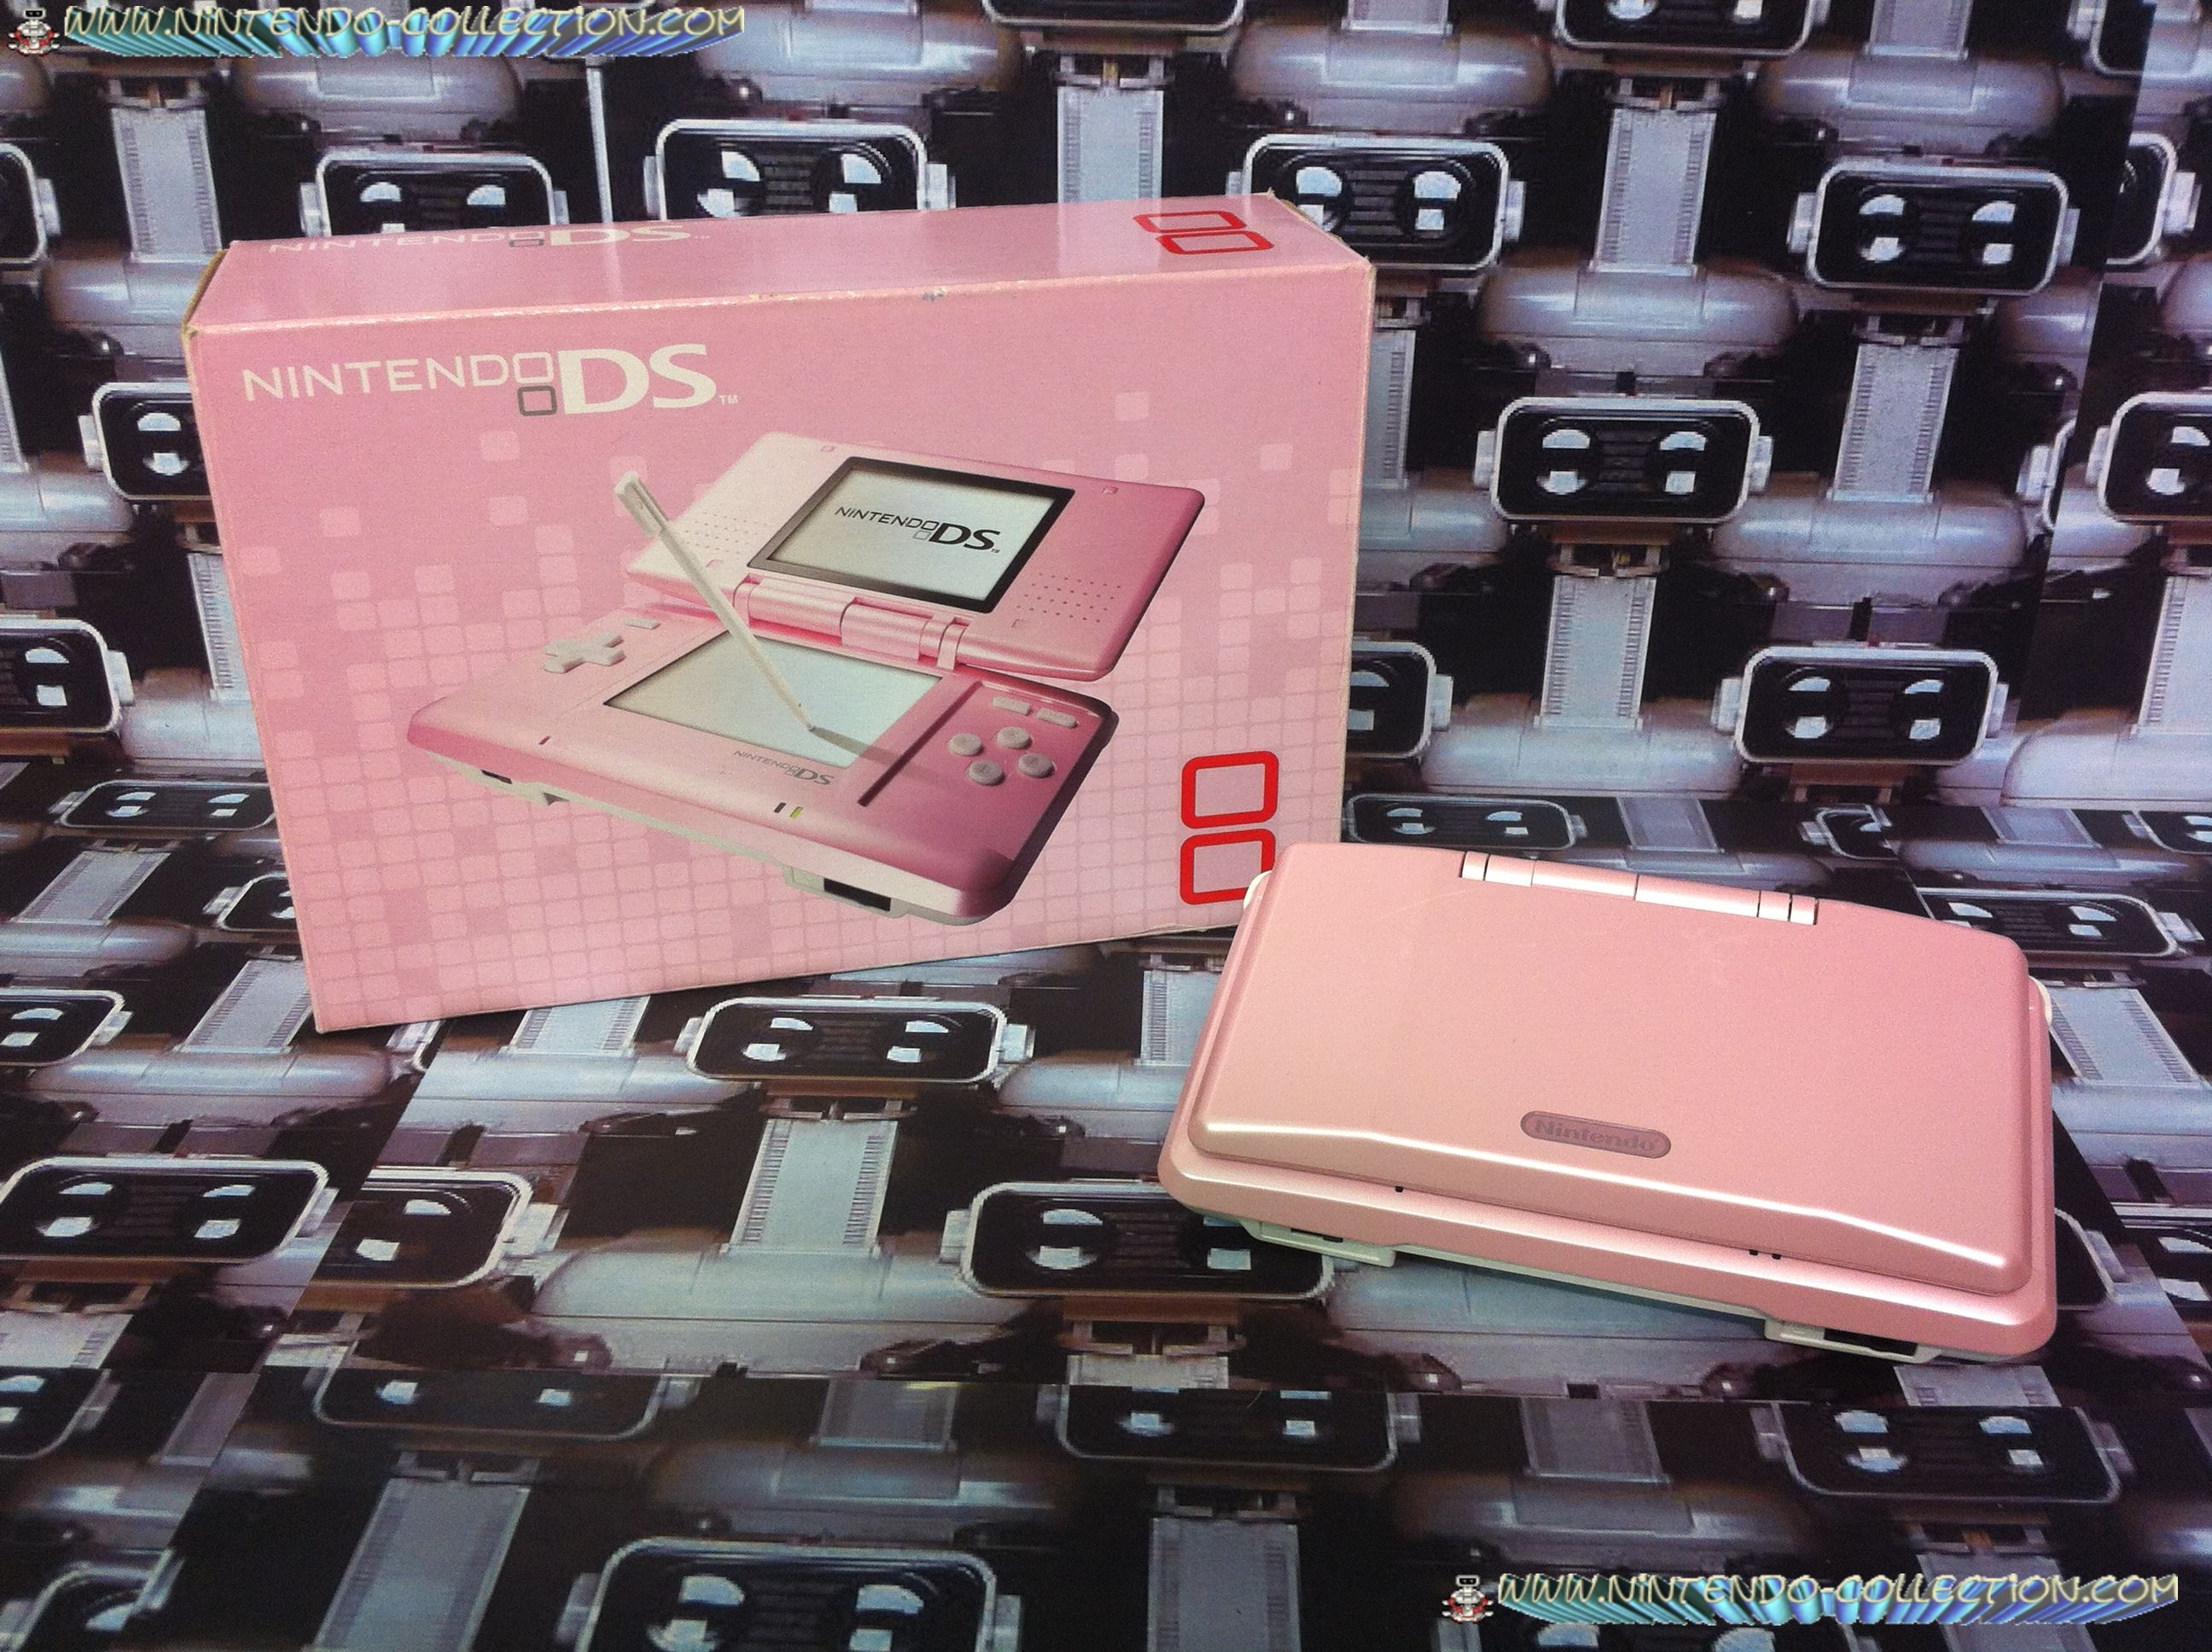 www.nintendo-collection.com - Nintendo DS Pink rose